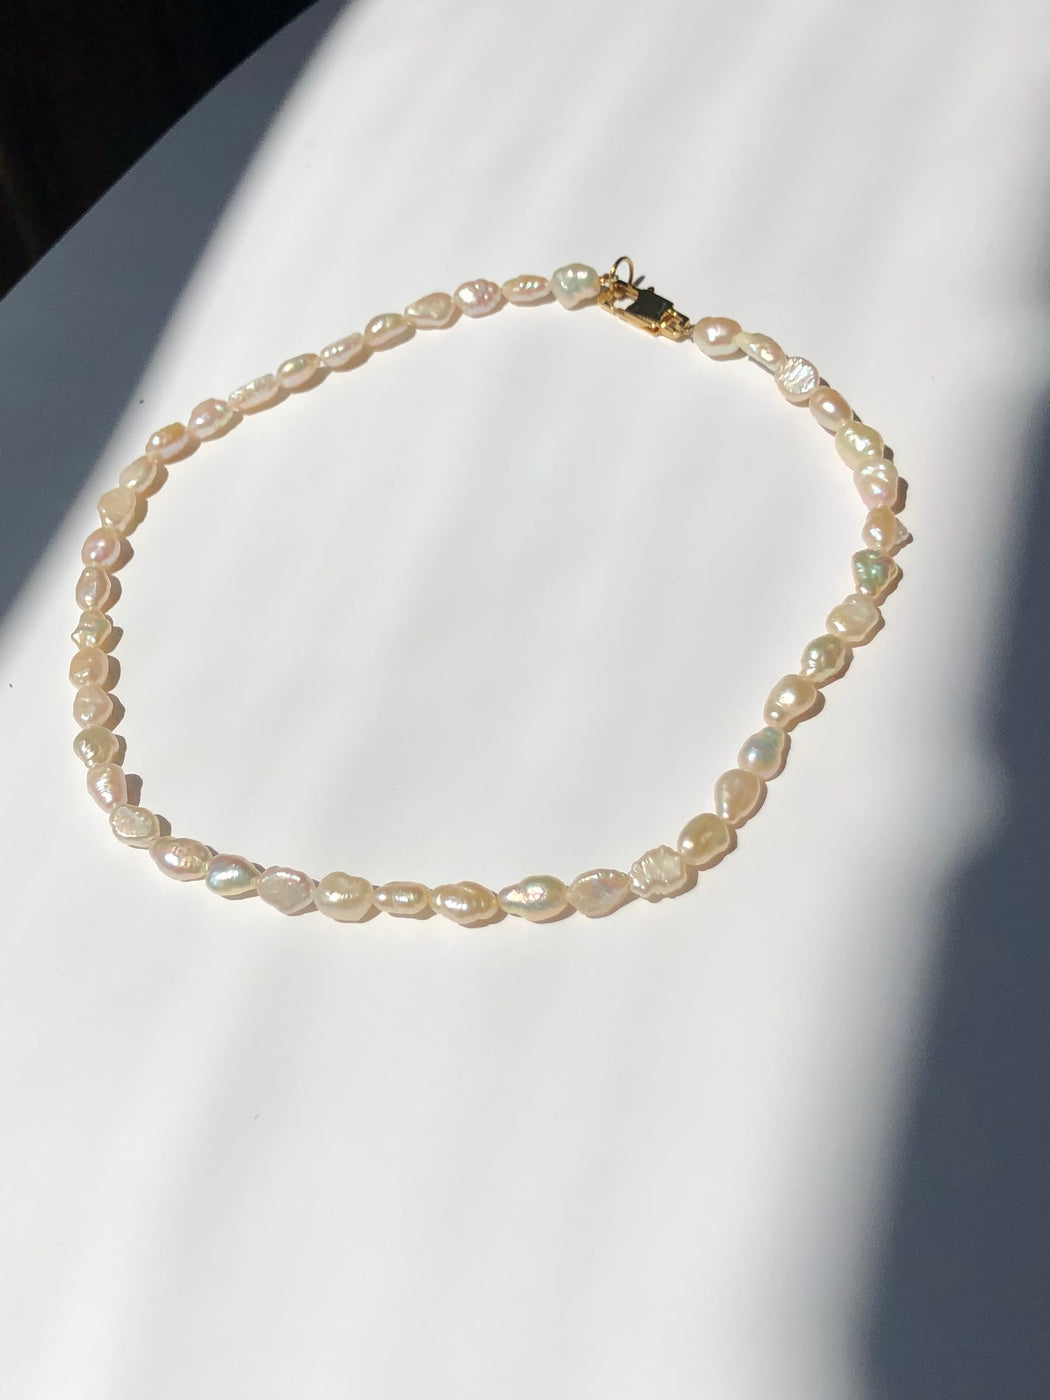 The Freshwater pearl necklace